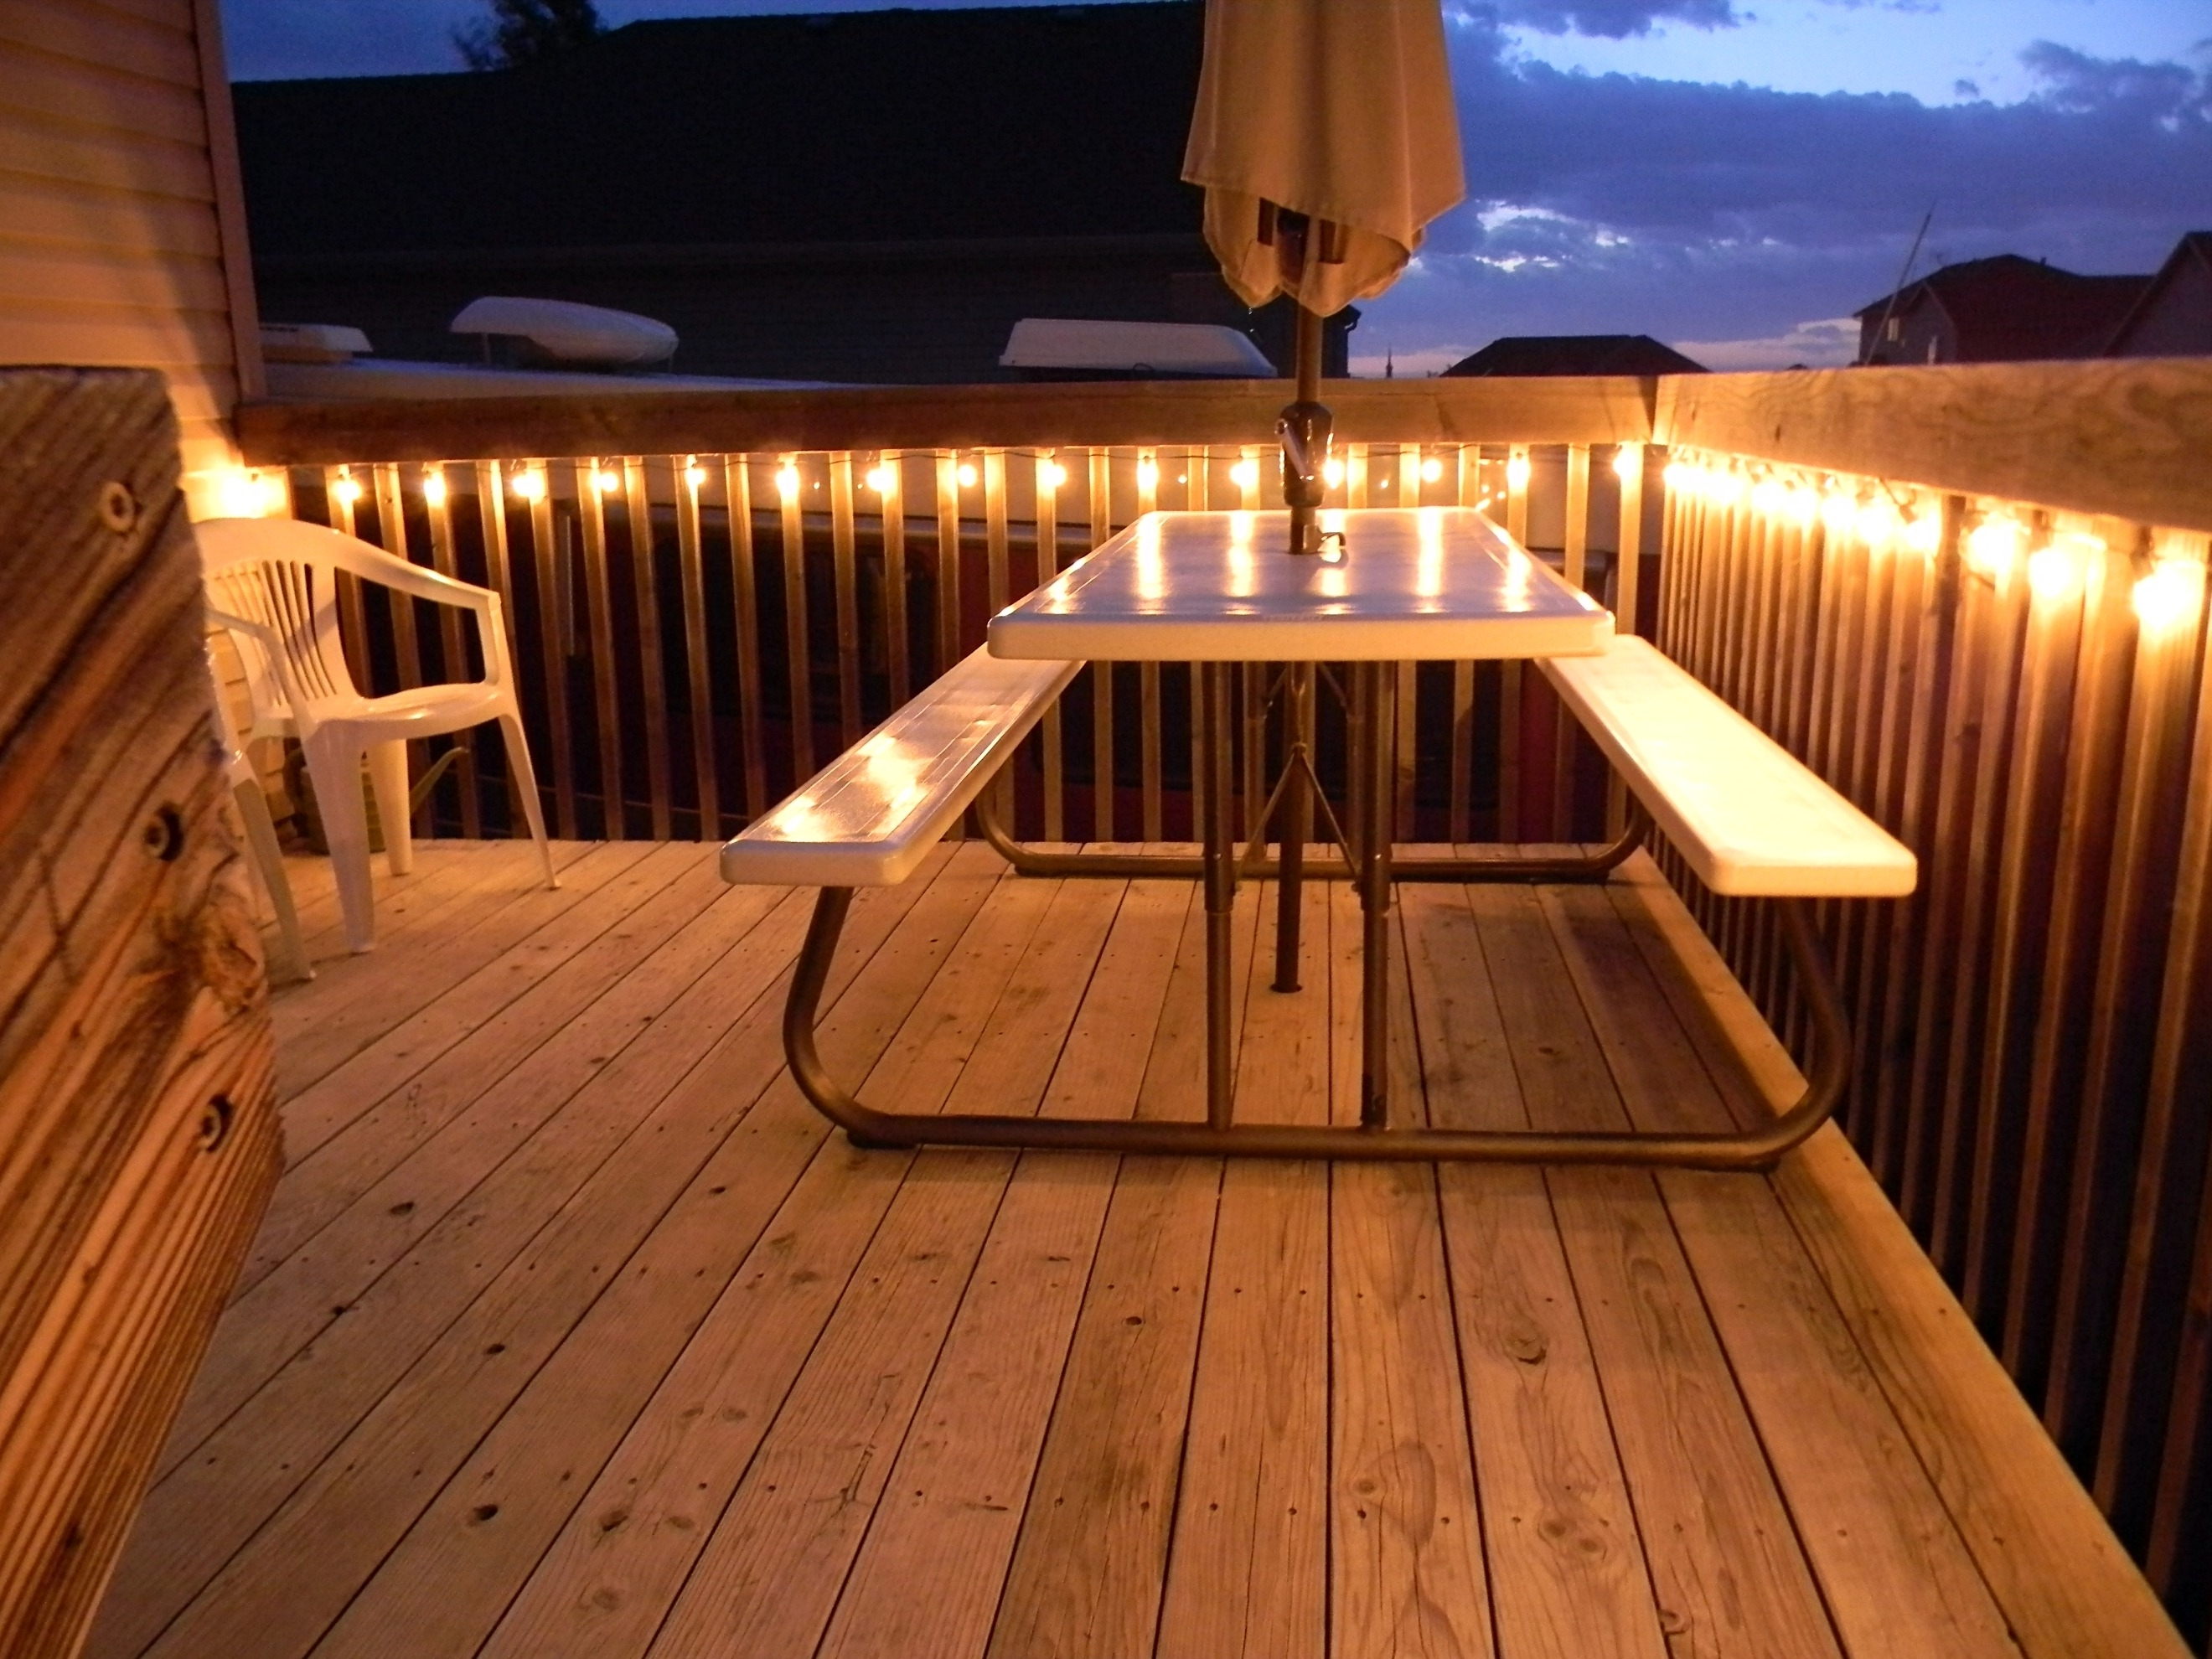 Newest Cheap Outdoor Teak Furniture Design For Wooden Decks With Unique In Outdoor Lanterns For Deck (Gallery 8 of 20)